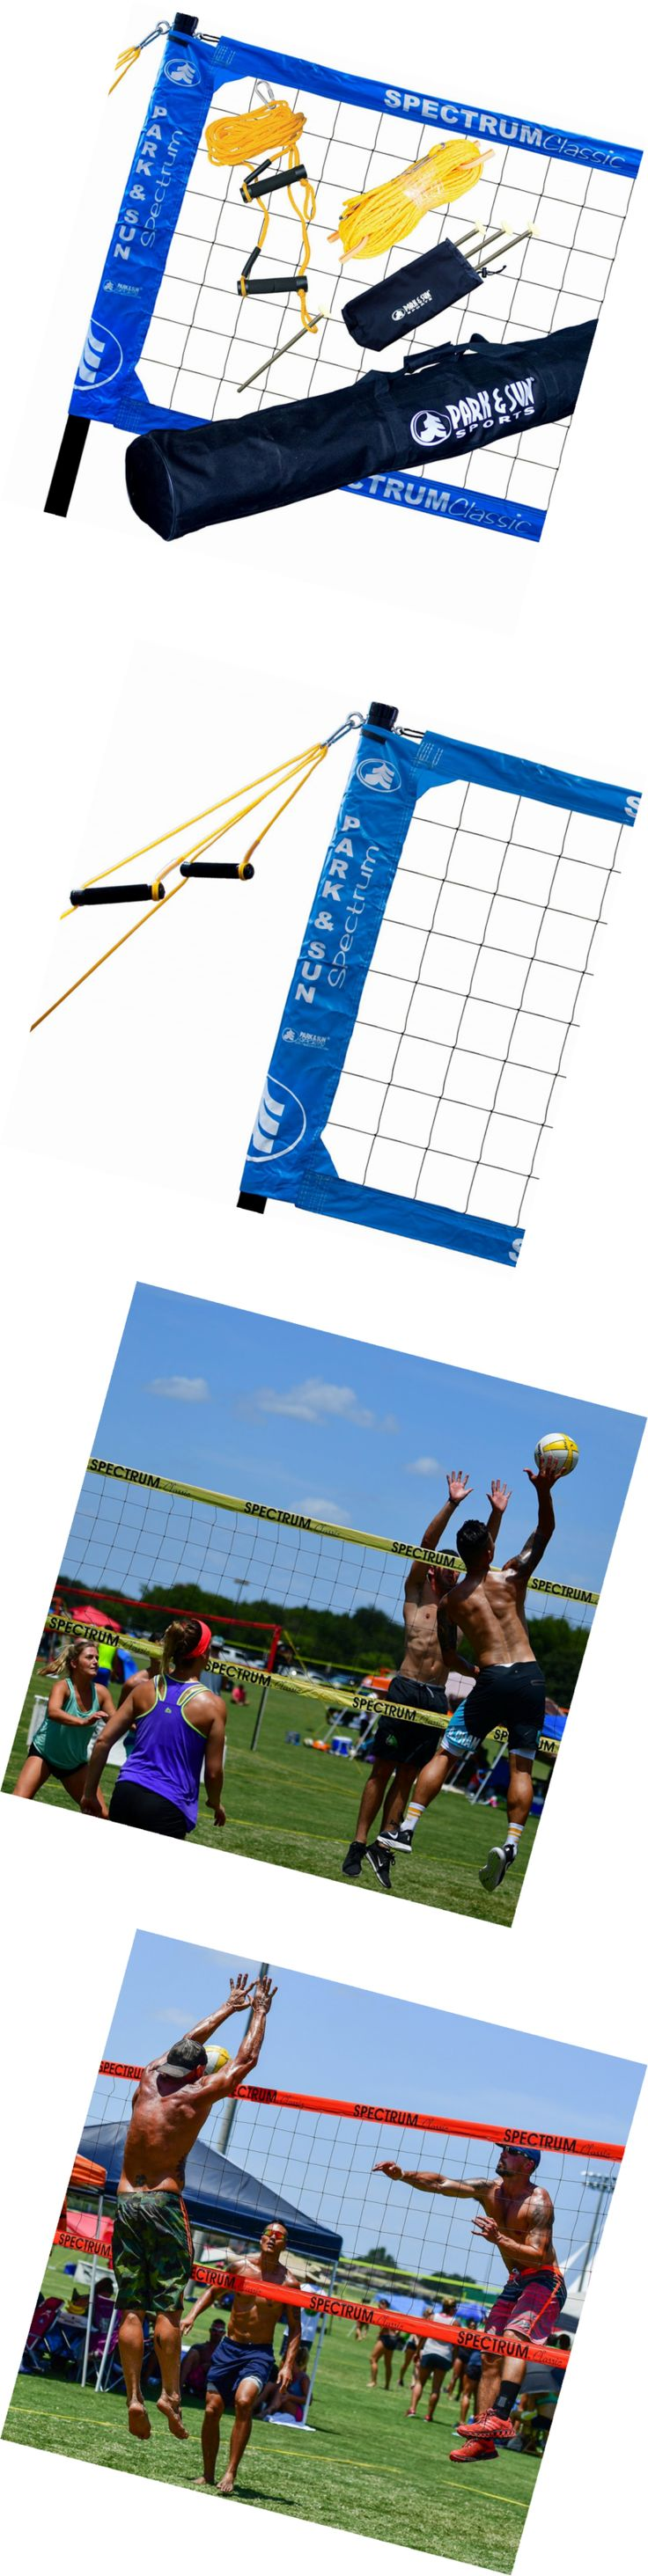 Nets 159131: Park And Sun Sports Spectrum Classic: Portable Professional Outdoor Volleyball Net -> BUY IT NOW ONLY: $298.4 on eBay!